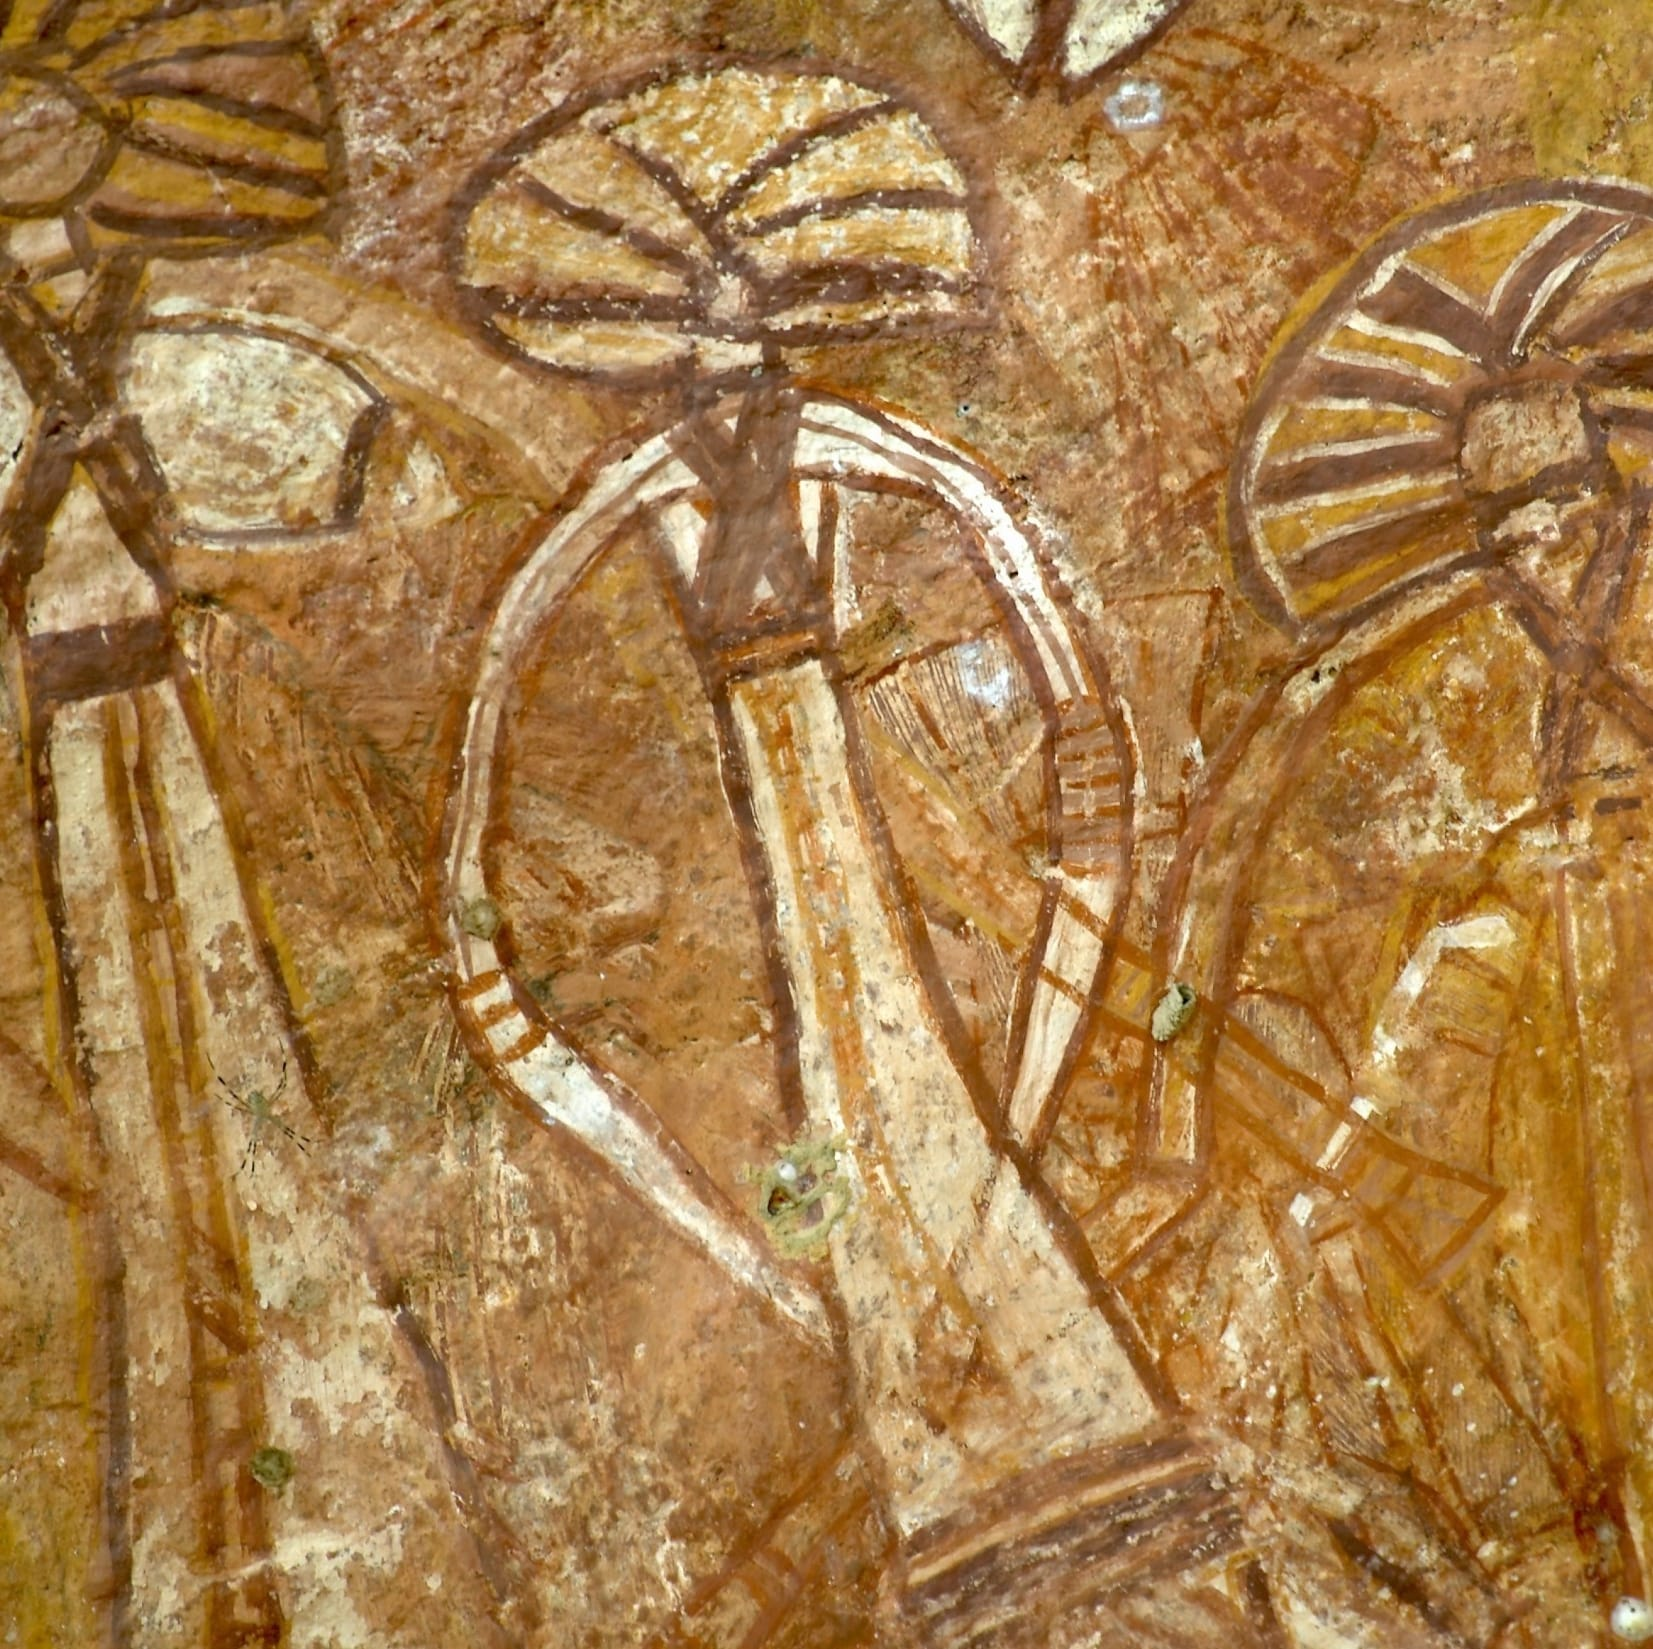 Aboriginal rock art at Nourlangie Rock in Kakadu National Park © Tourism NT/Peter Eve